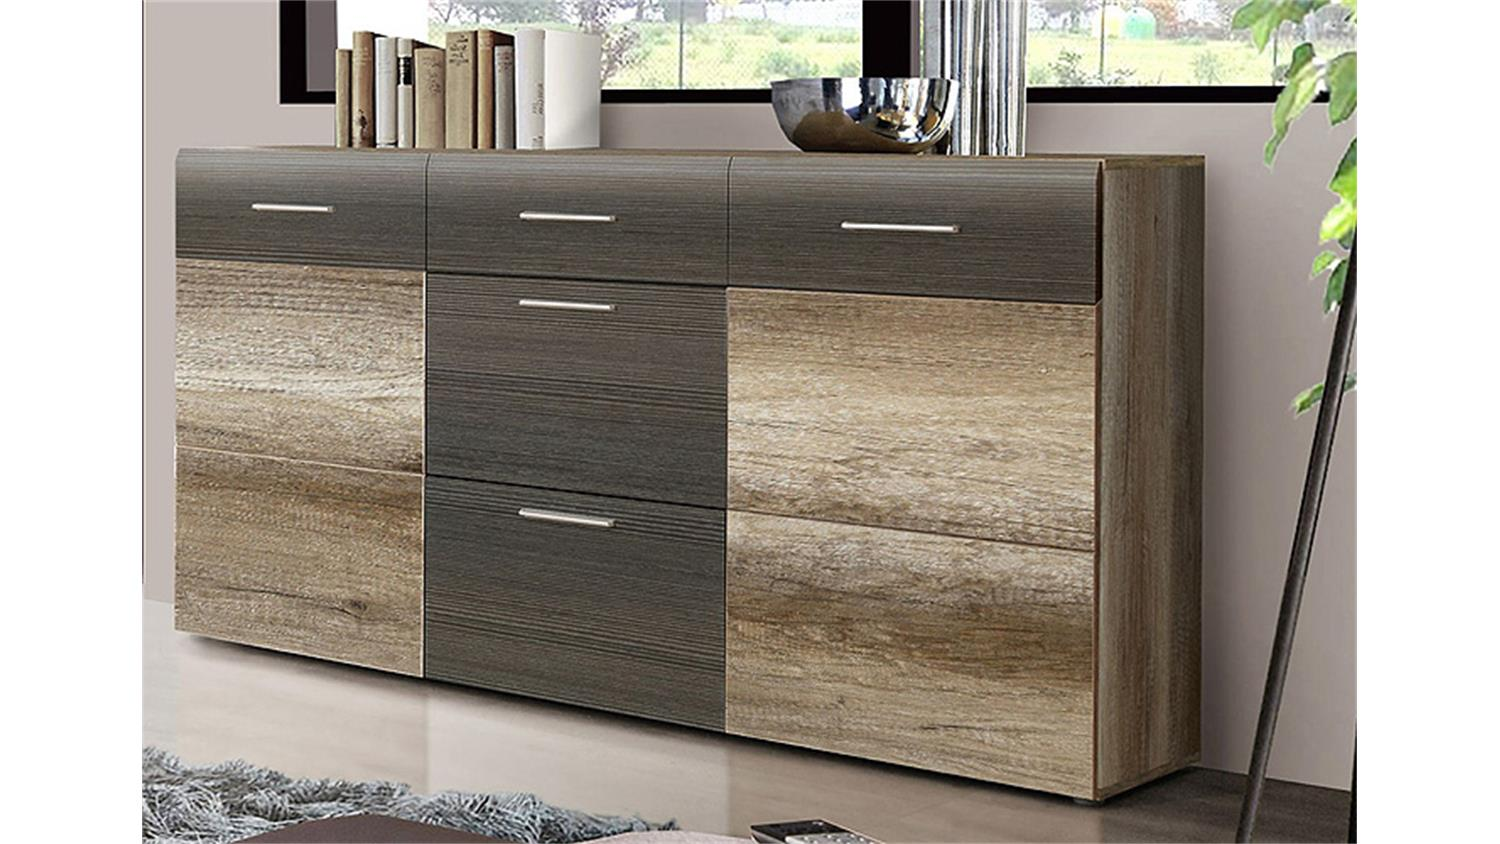 sideboard nabou eiche antik und touchwood braun. Black Bedroom Furniture Sets. Home Design Ideas